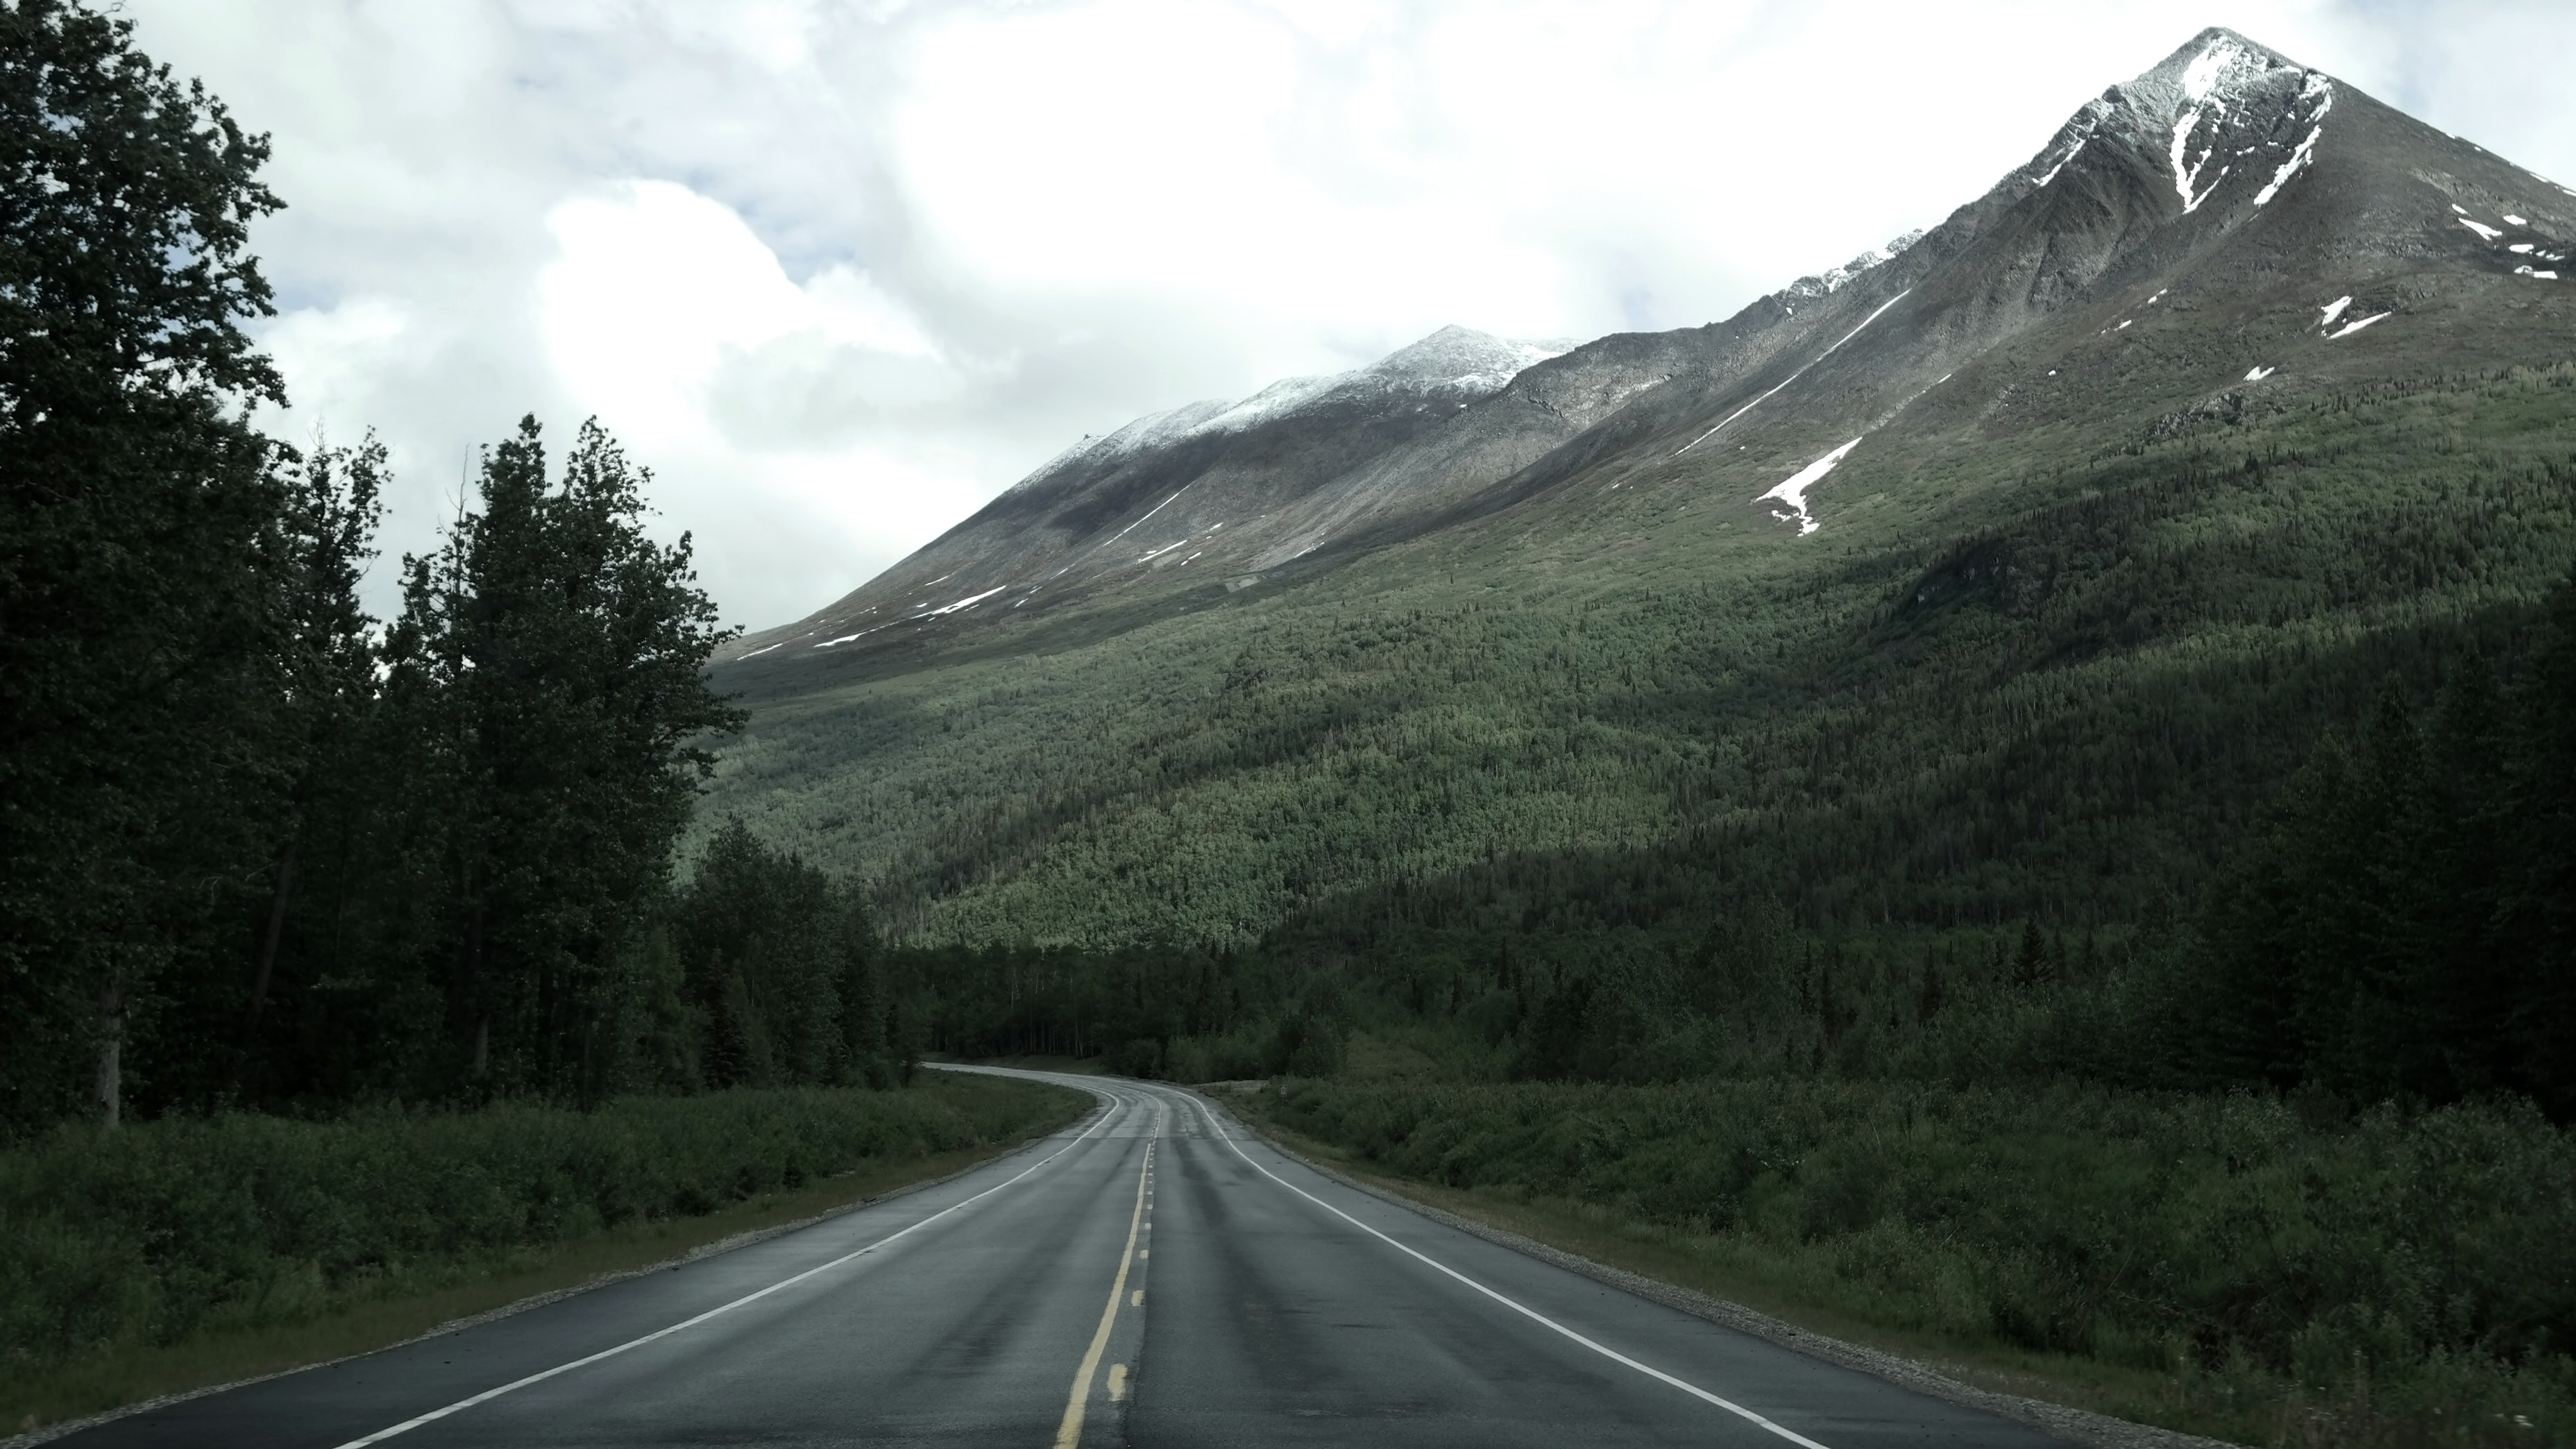 An empty asphalt road near a wooded slope of tall snow-capped mountains